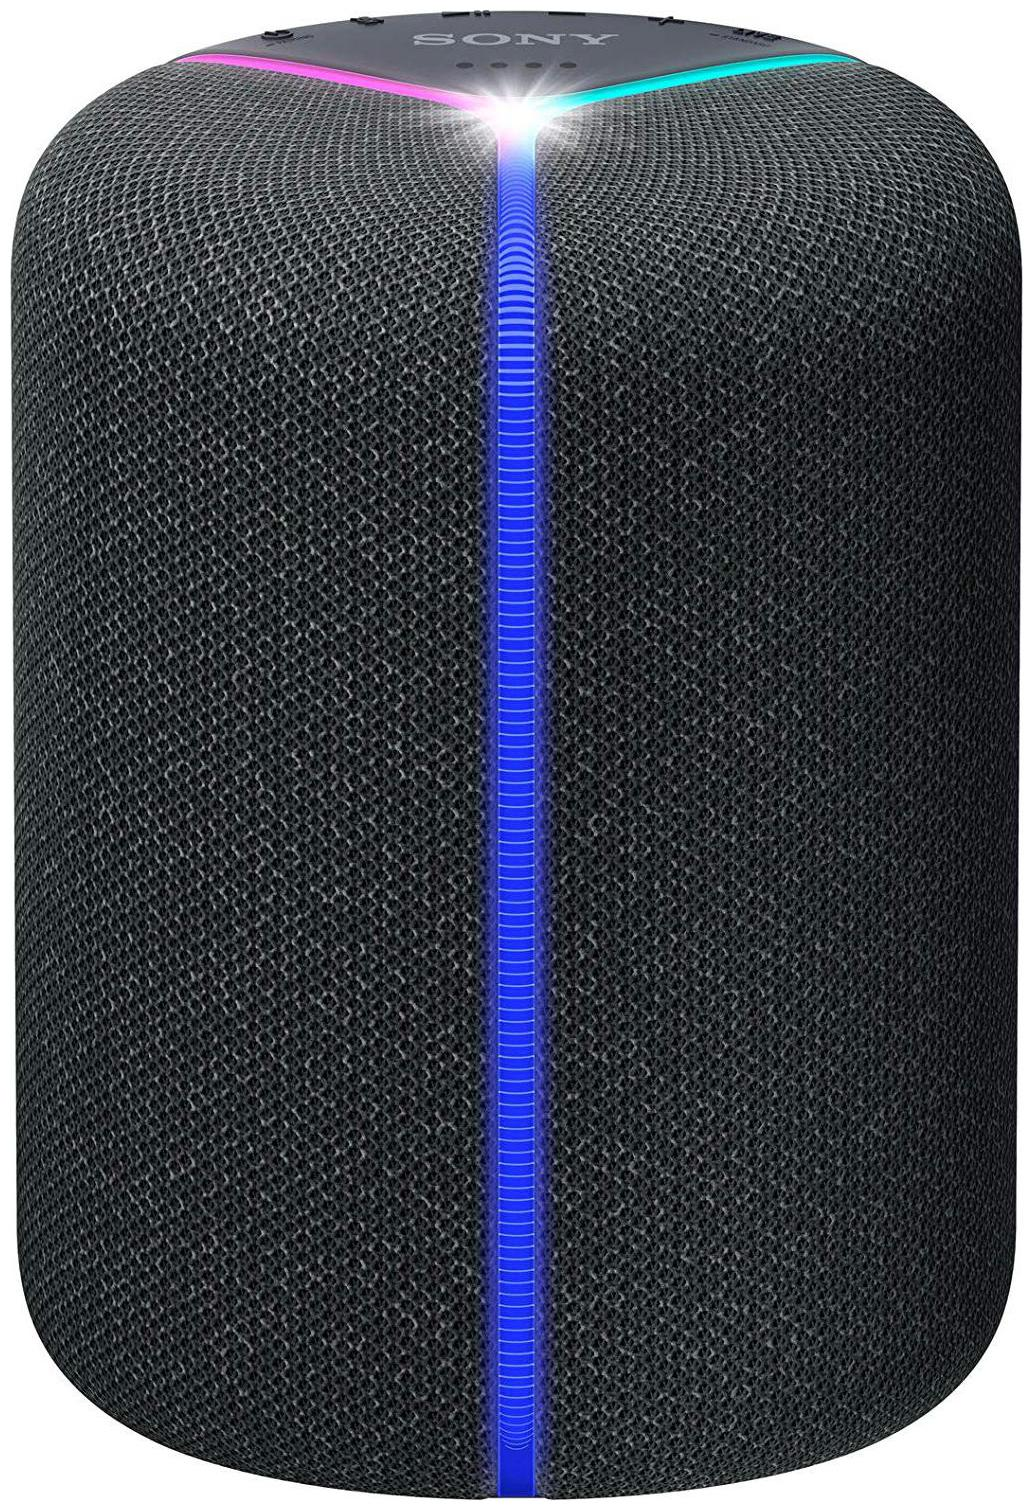 Sony SRS-XB402M Bluetooth Extra Bass Portable Speaker with Built-in Alexa (Black)